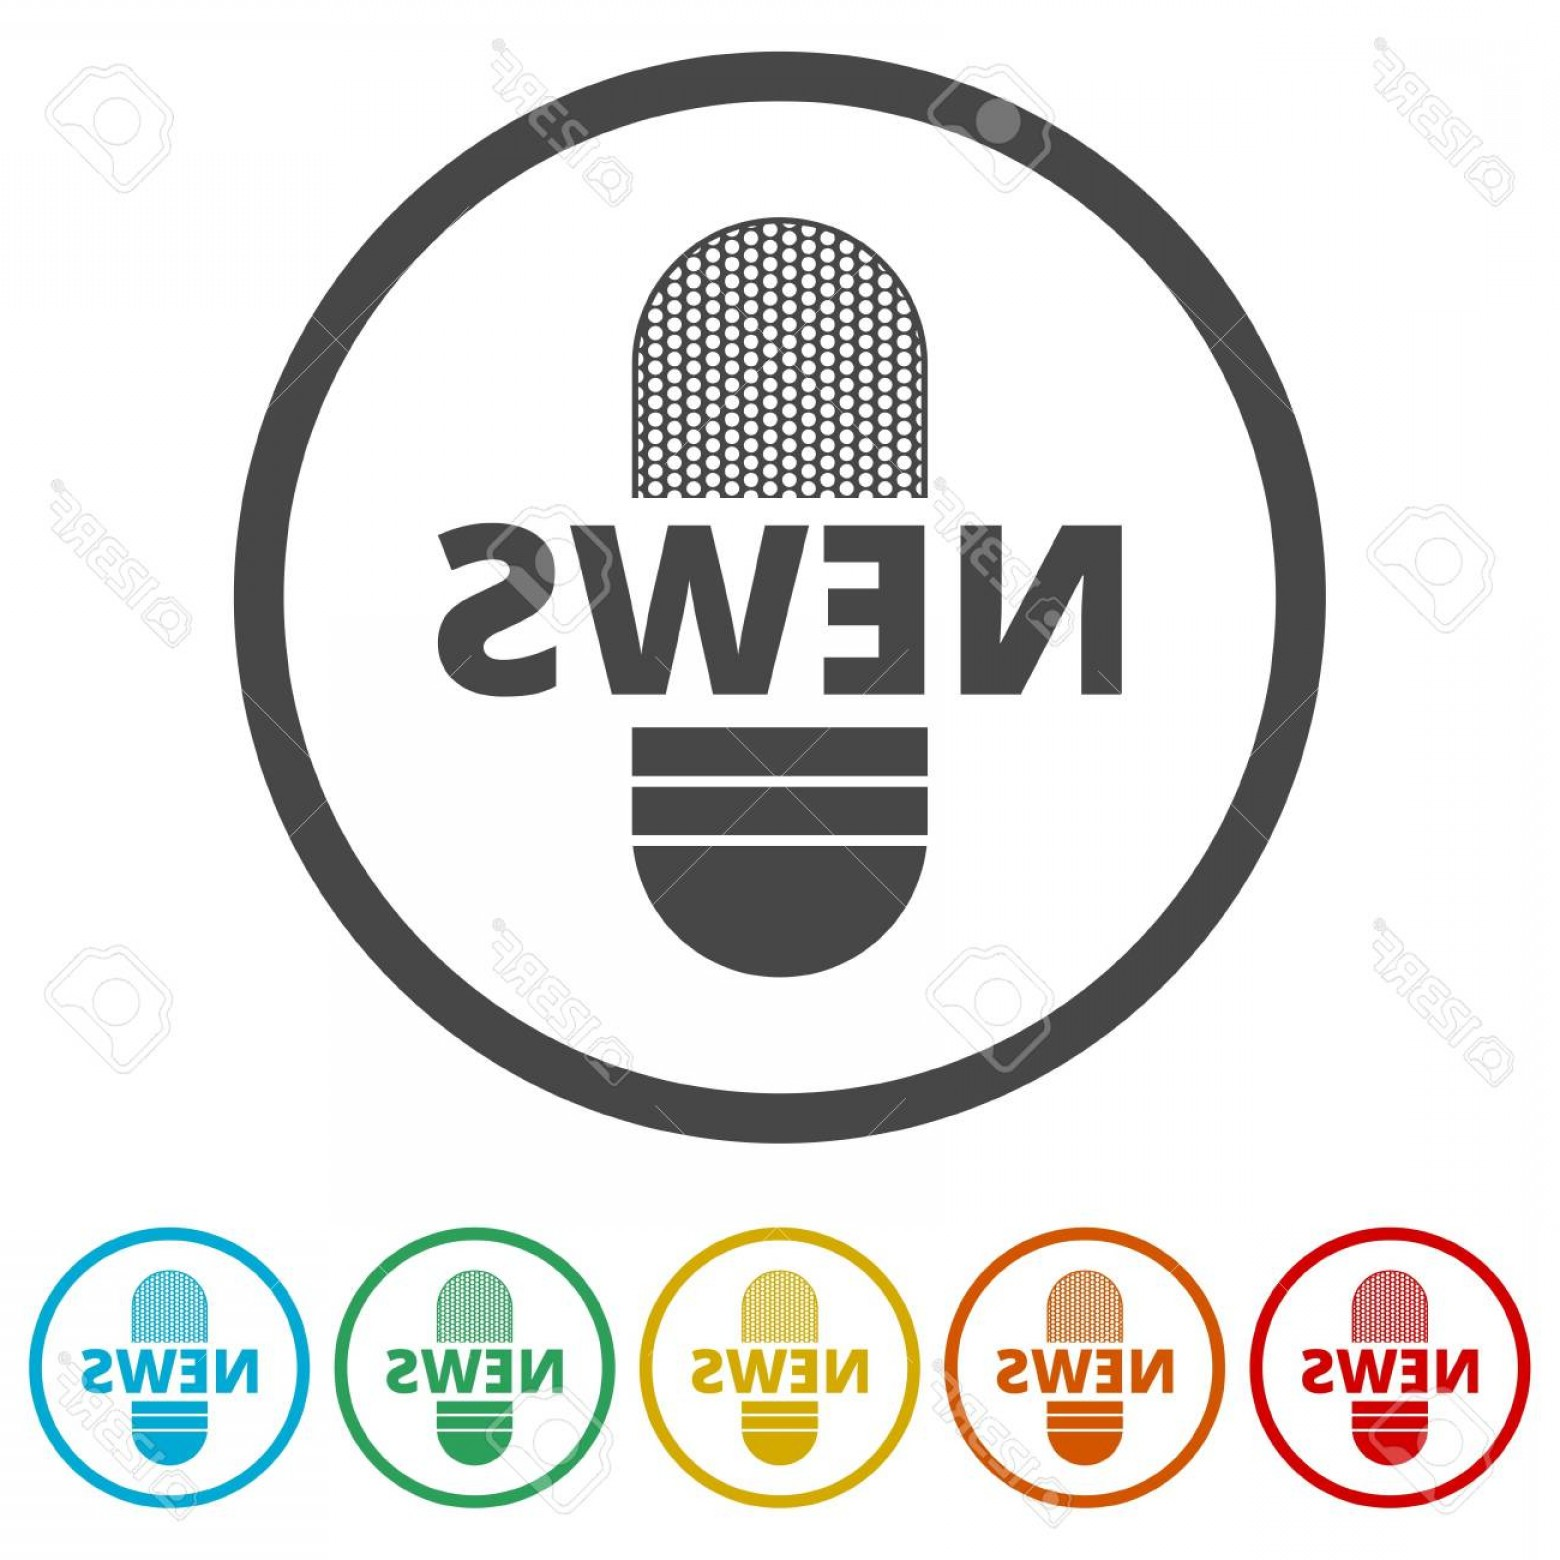 News Microphone Icon Vector: Photostock Vector News Microphone Icon Vector News Microphone Icon Colors Included